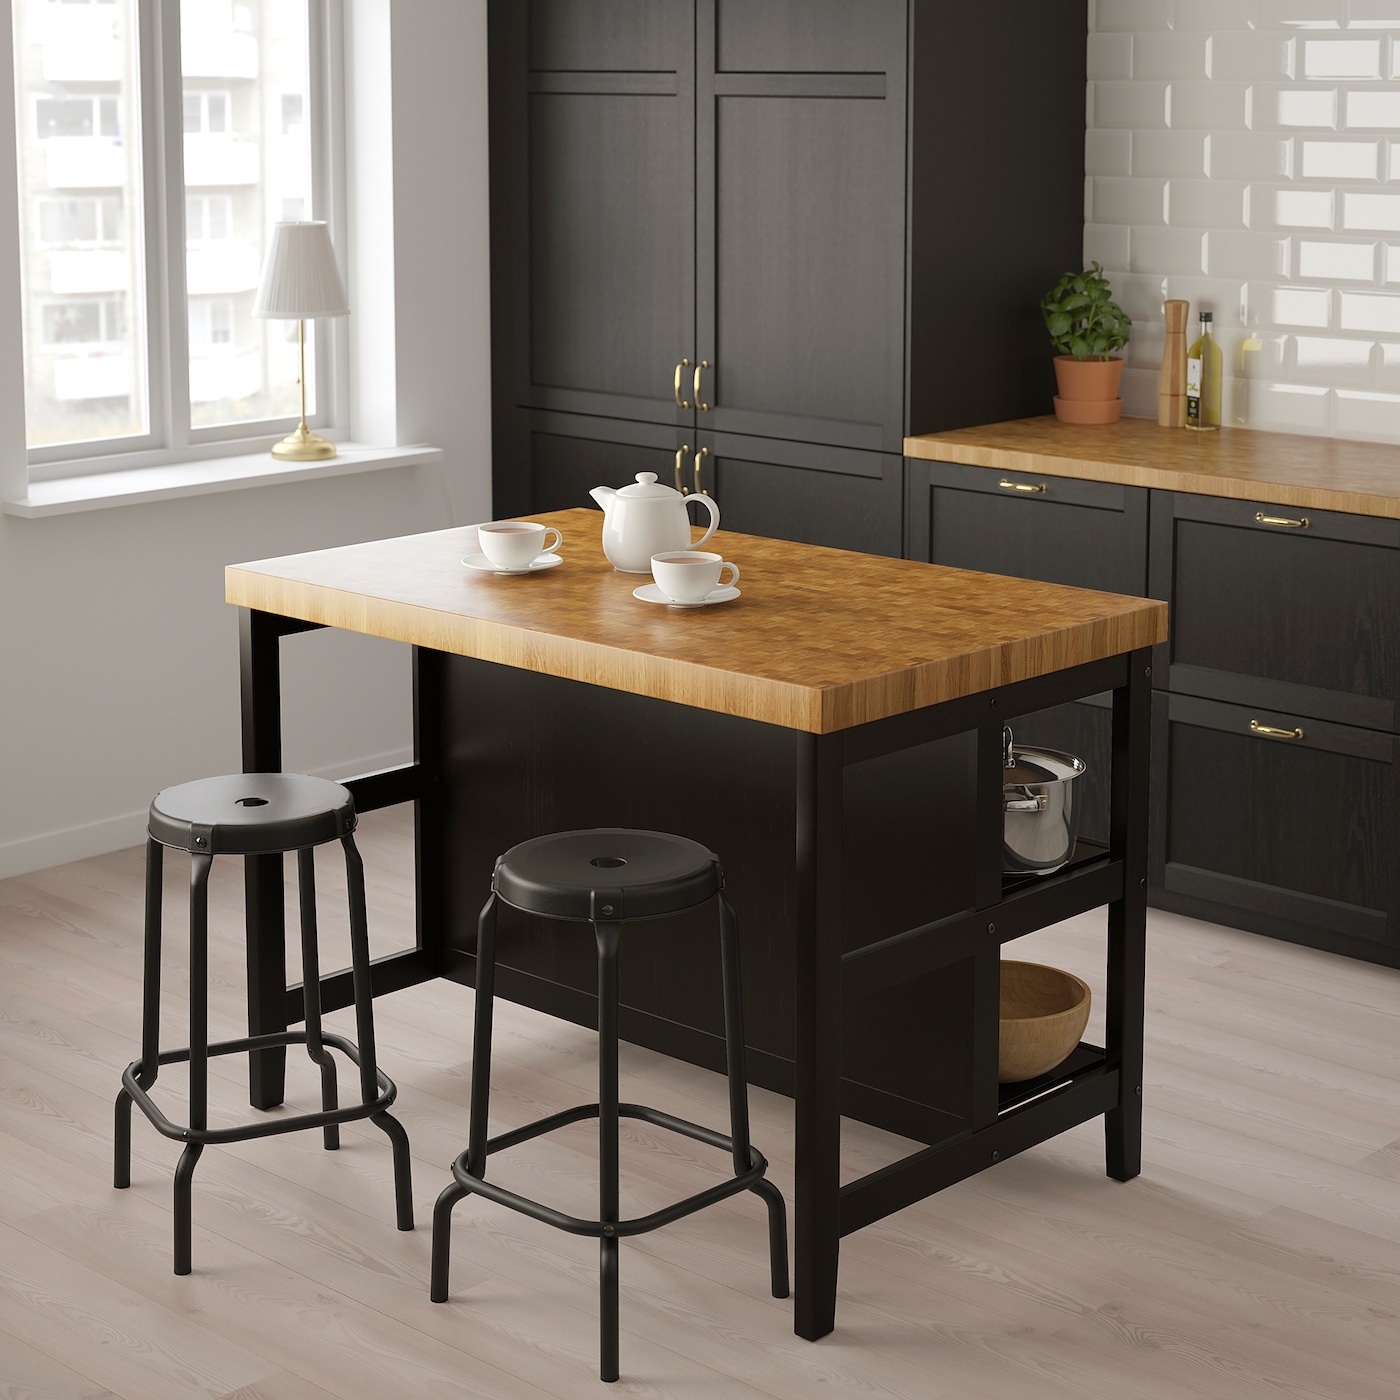 VADHOLMA Kitchen island, black/oak, 49 5/8x31 1/8x35 3/8 ""